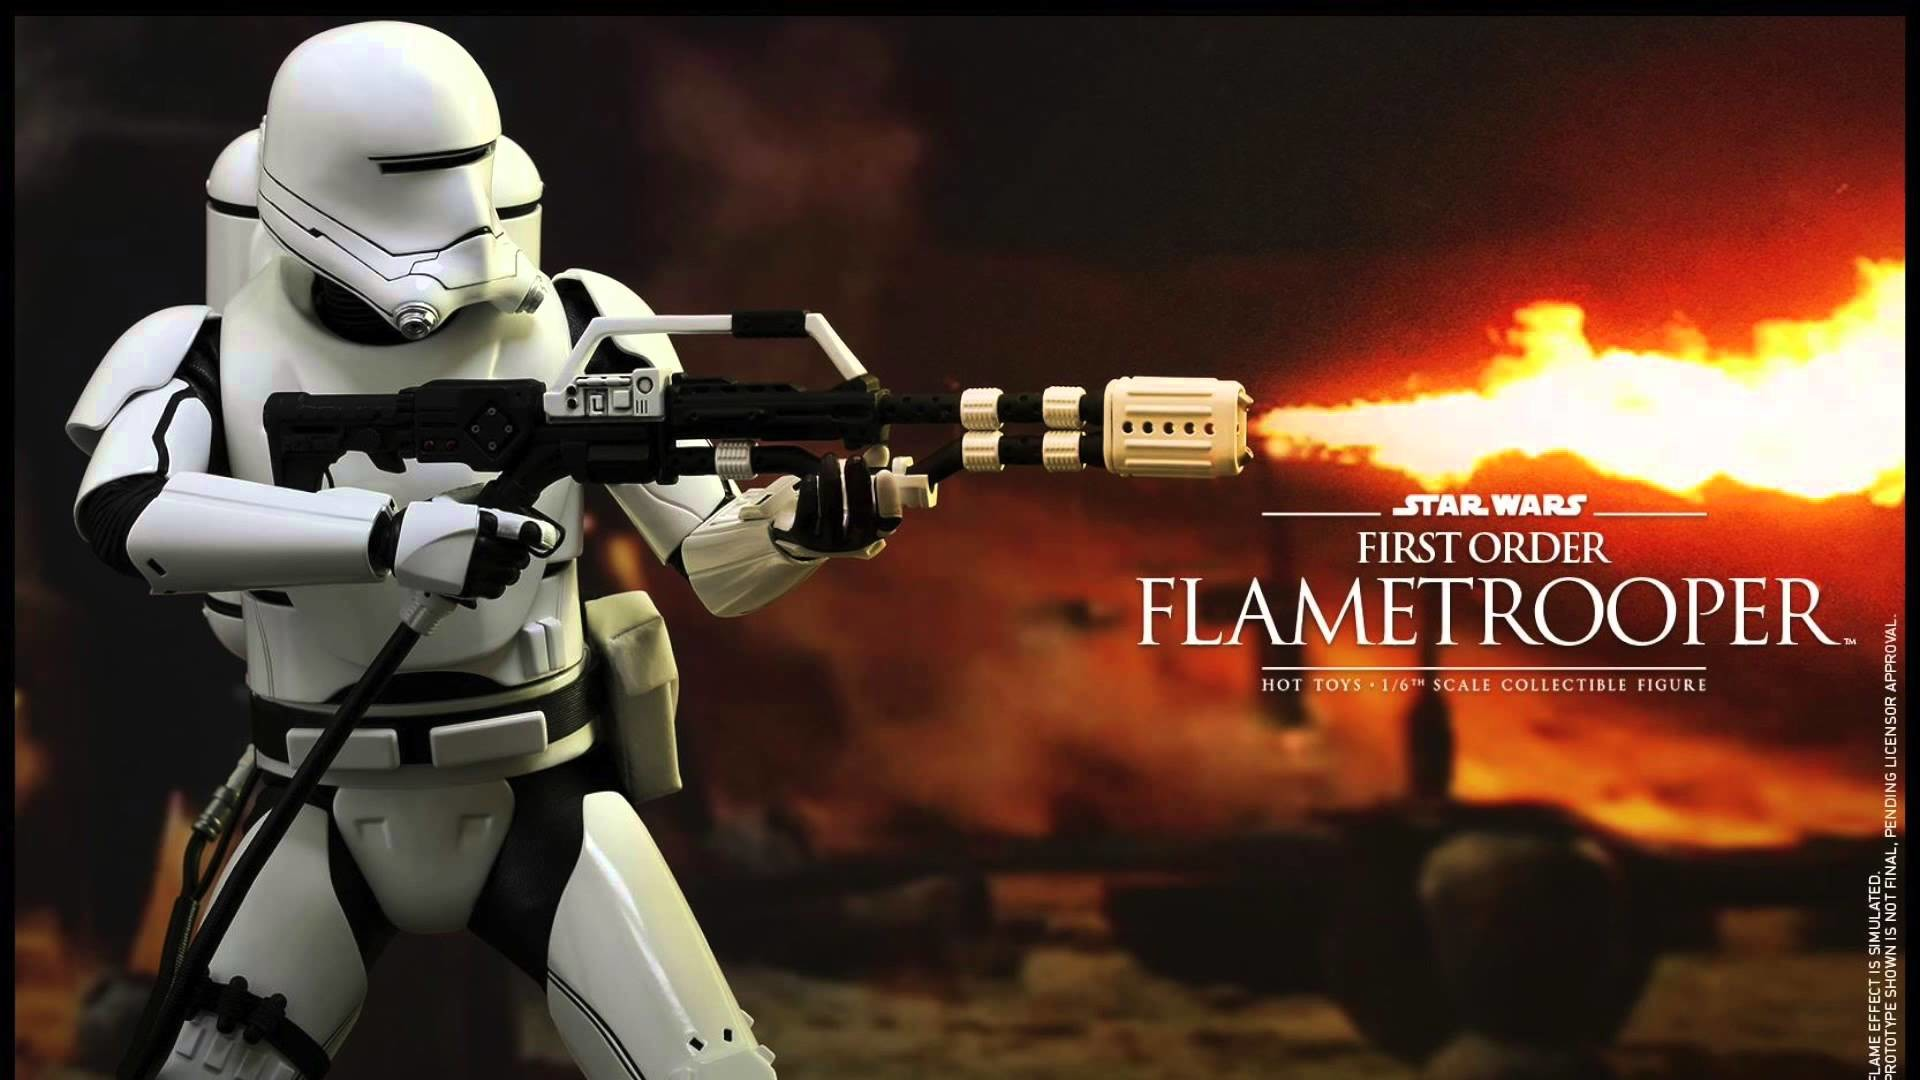 Star Wars The Force Awakens Hot Toys First Order Flametrooper 1/6 Scale  Movie Figure Revealed! – YouTube